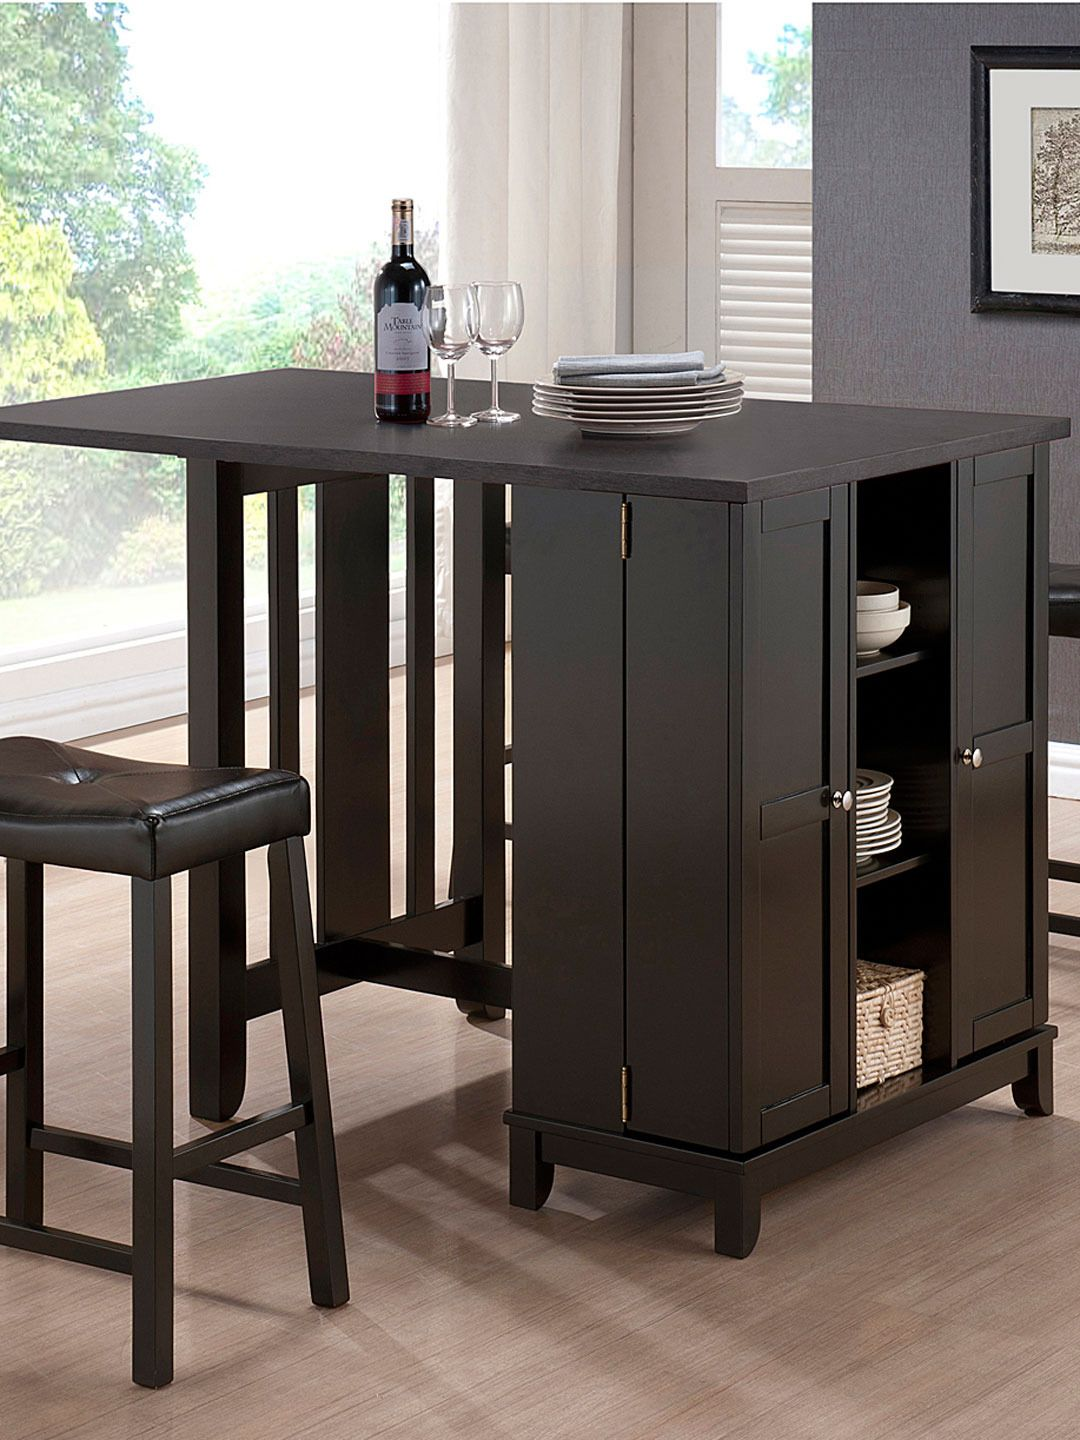 Aurora Modern Pub Table Set With Cabinet Base (5PC)   Gilt Home